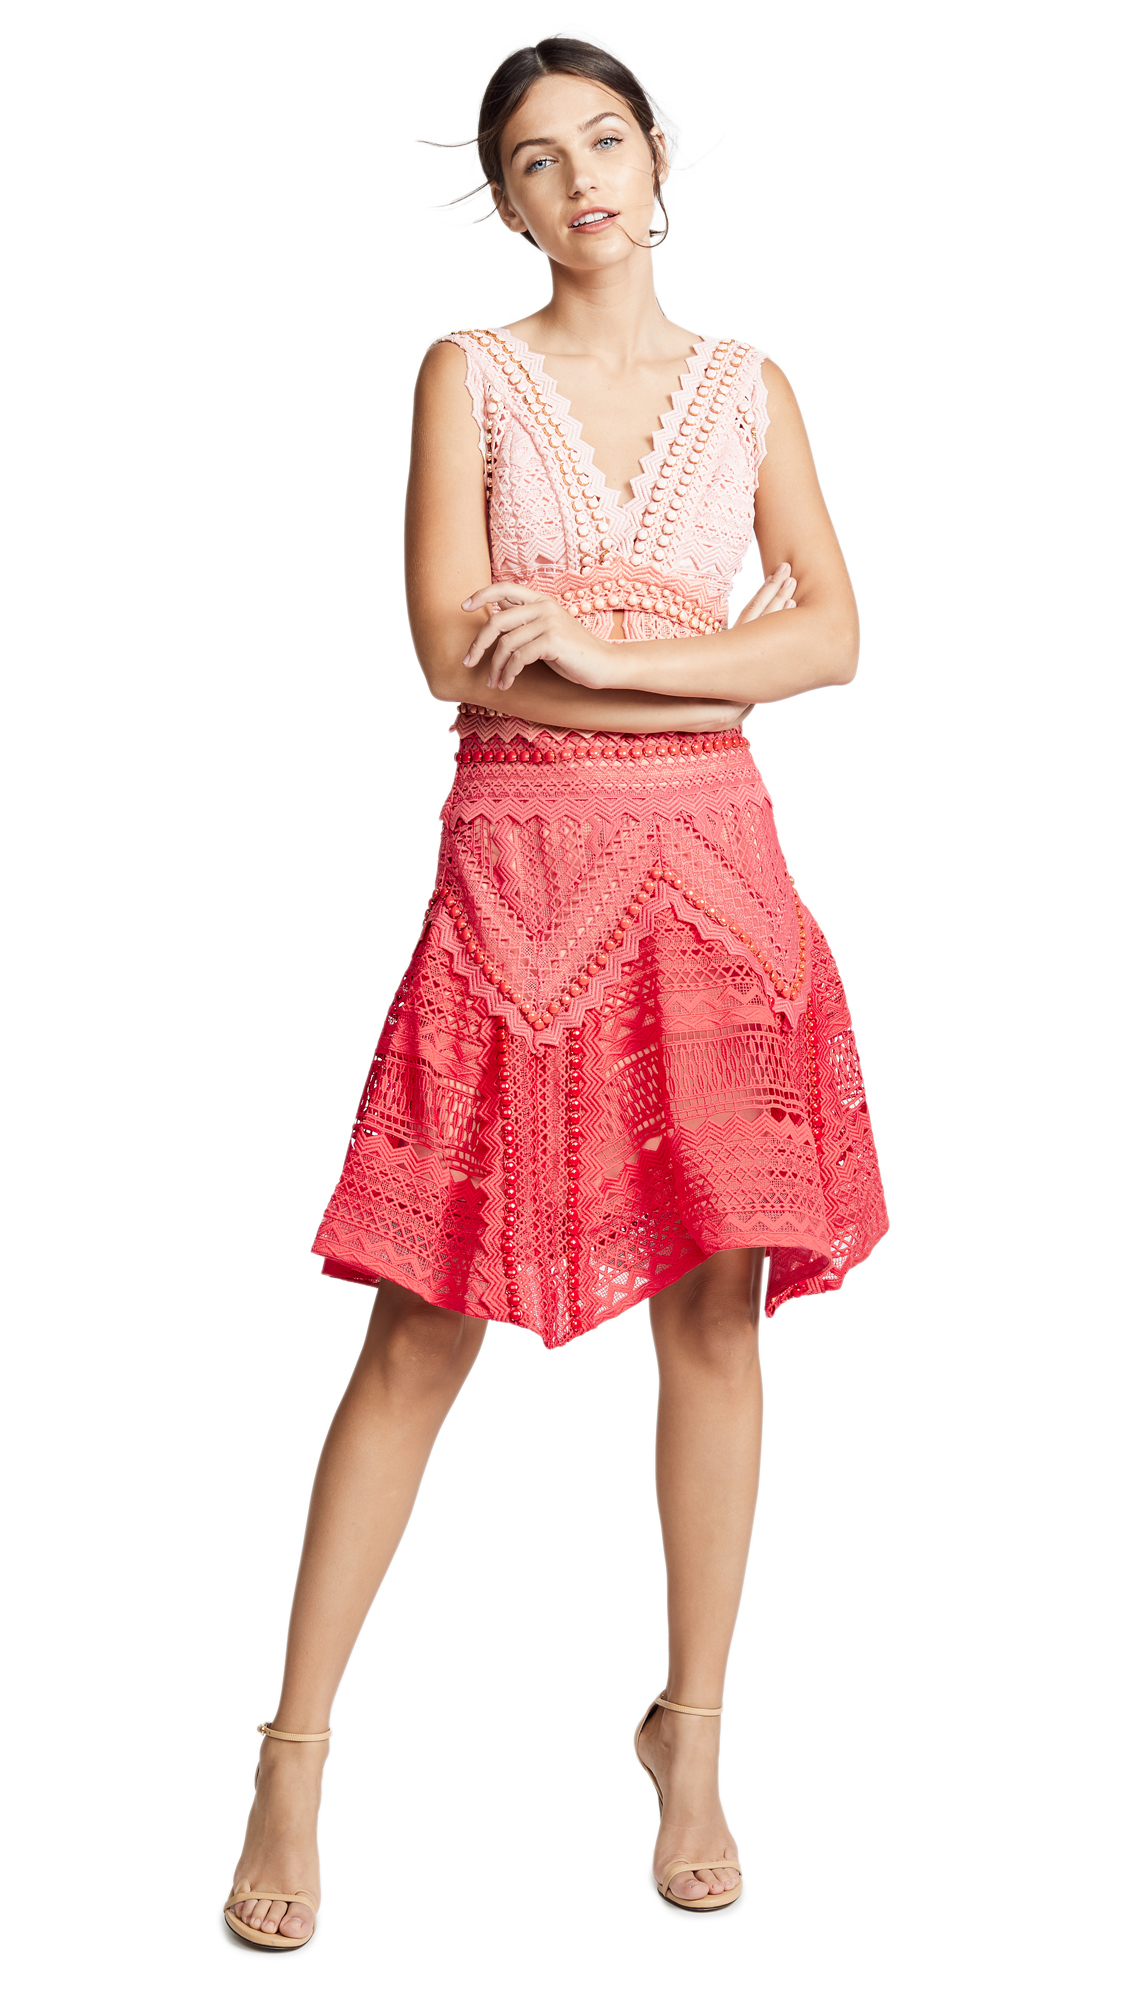 THURLEY Bahamas Dress - Red Ombre